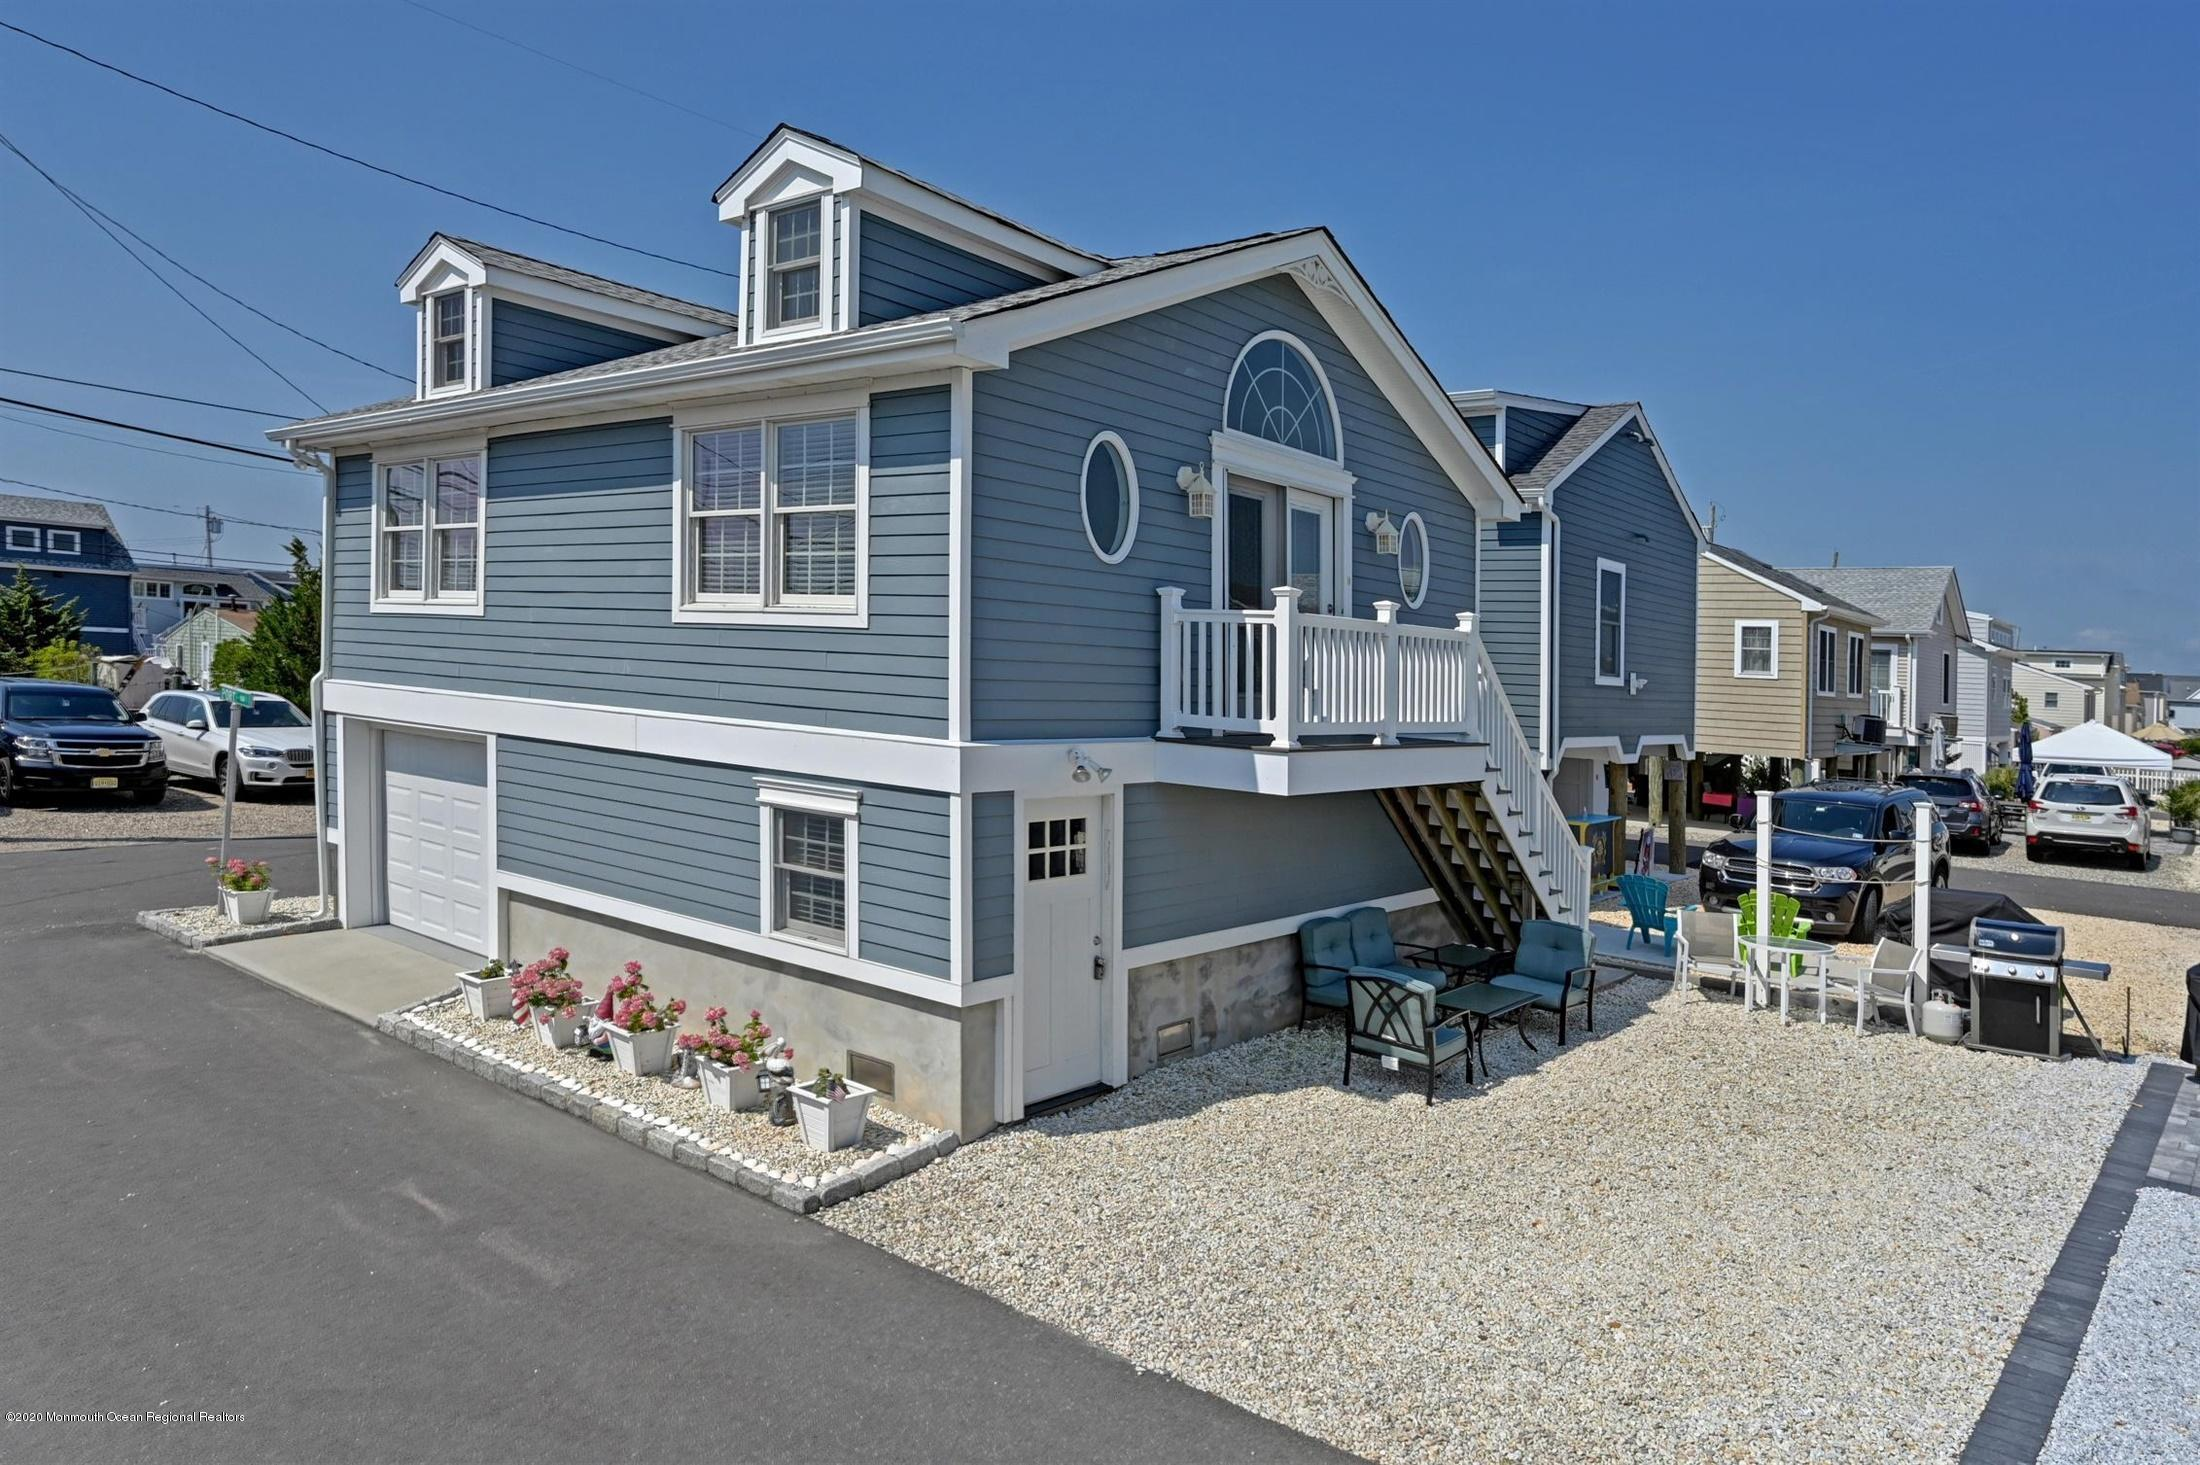 Photo of 202 Gull Lane, Lavallette, NJ 08735